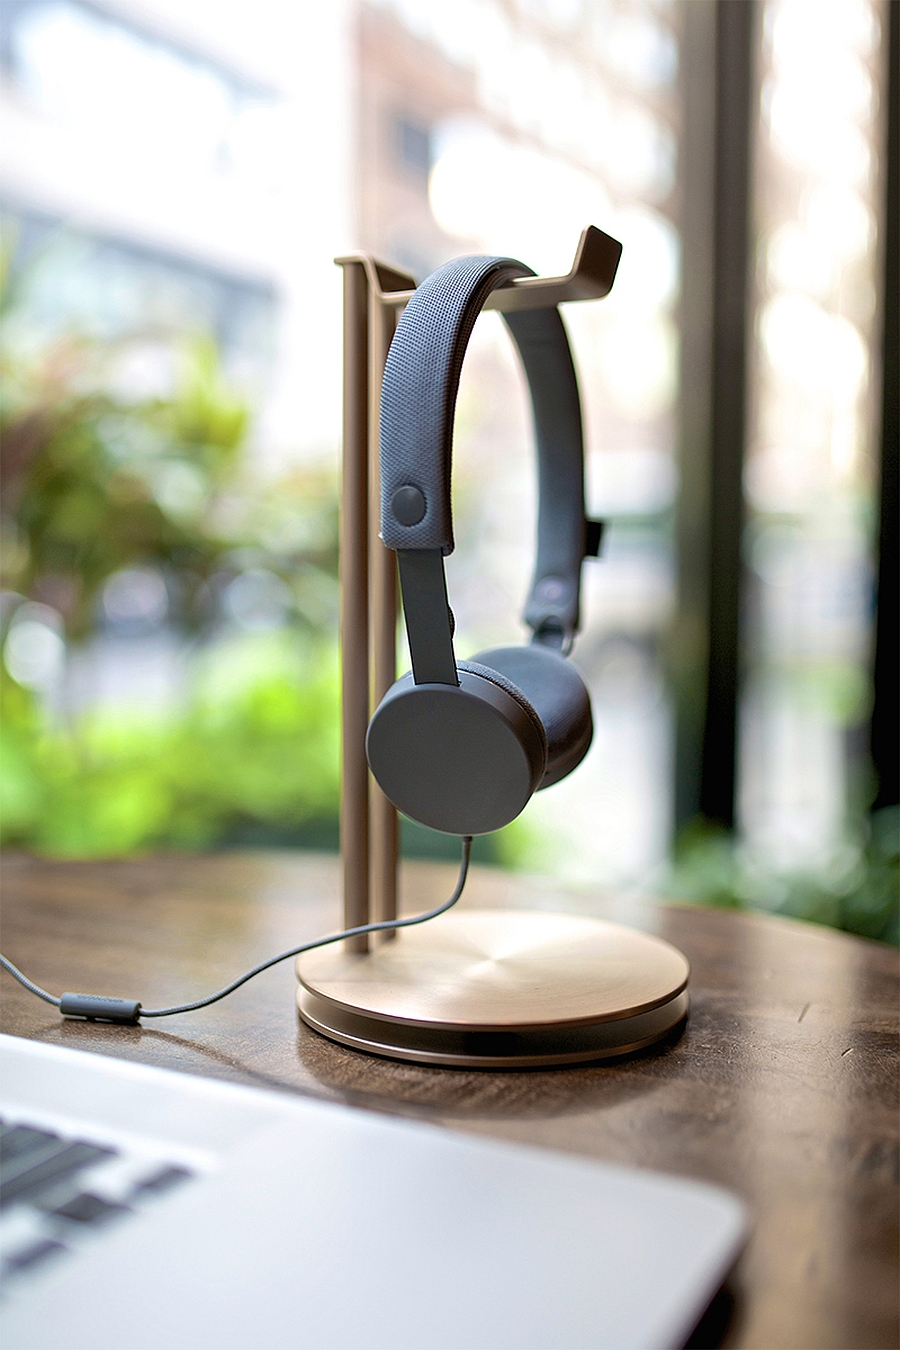 Complete your office or home desk setup with glamorous gold headphone hanger